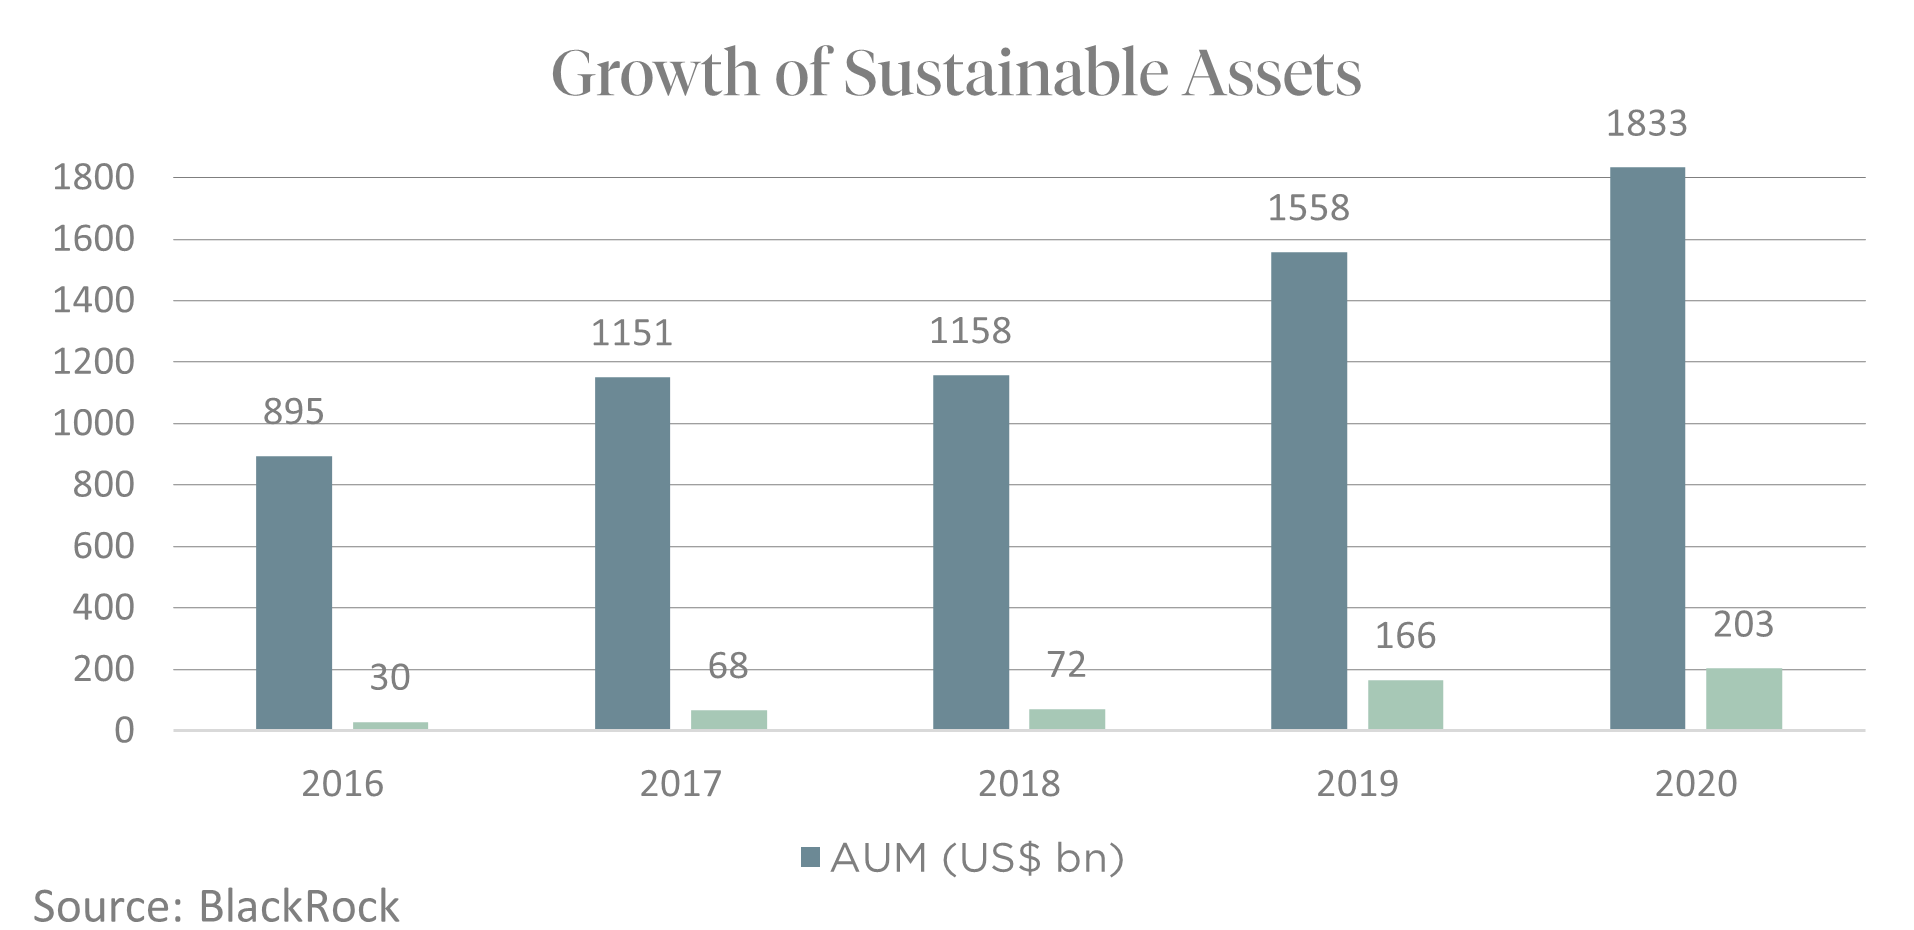 Growth of Sustainable Assets